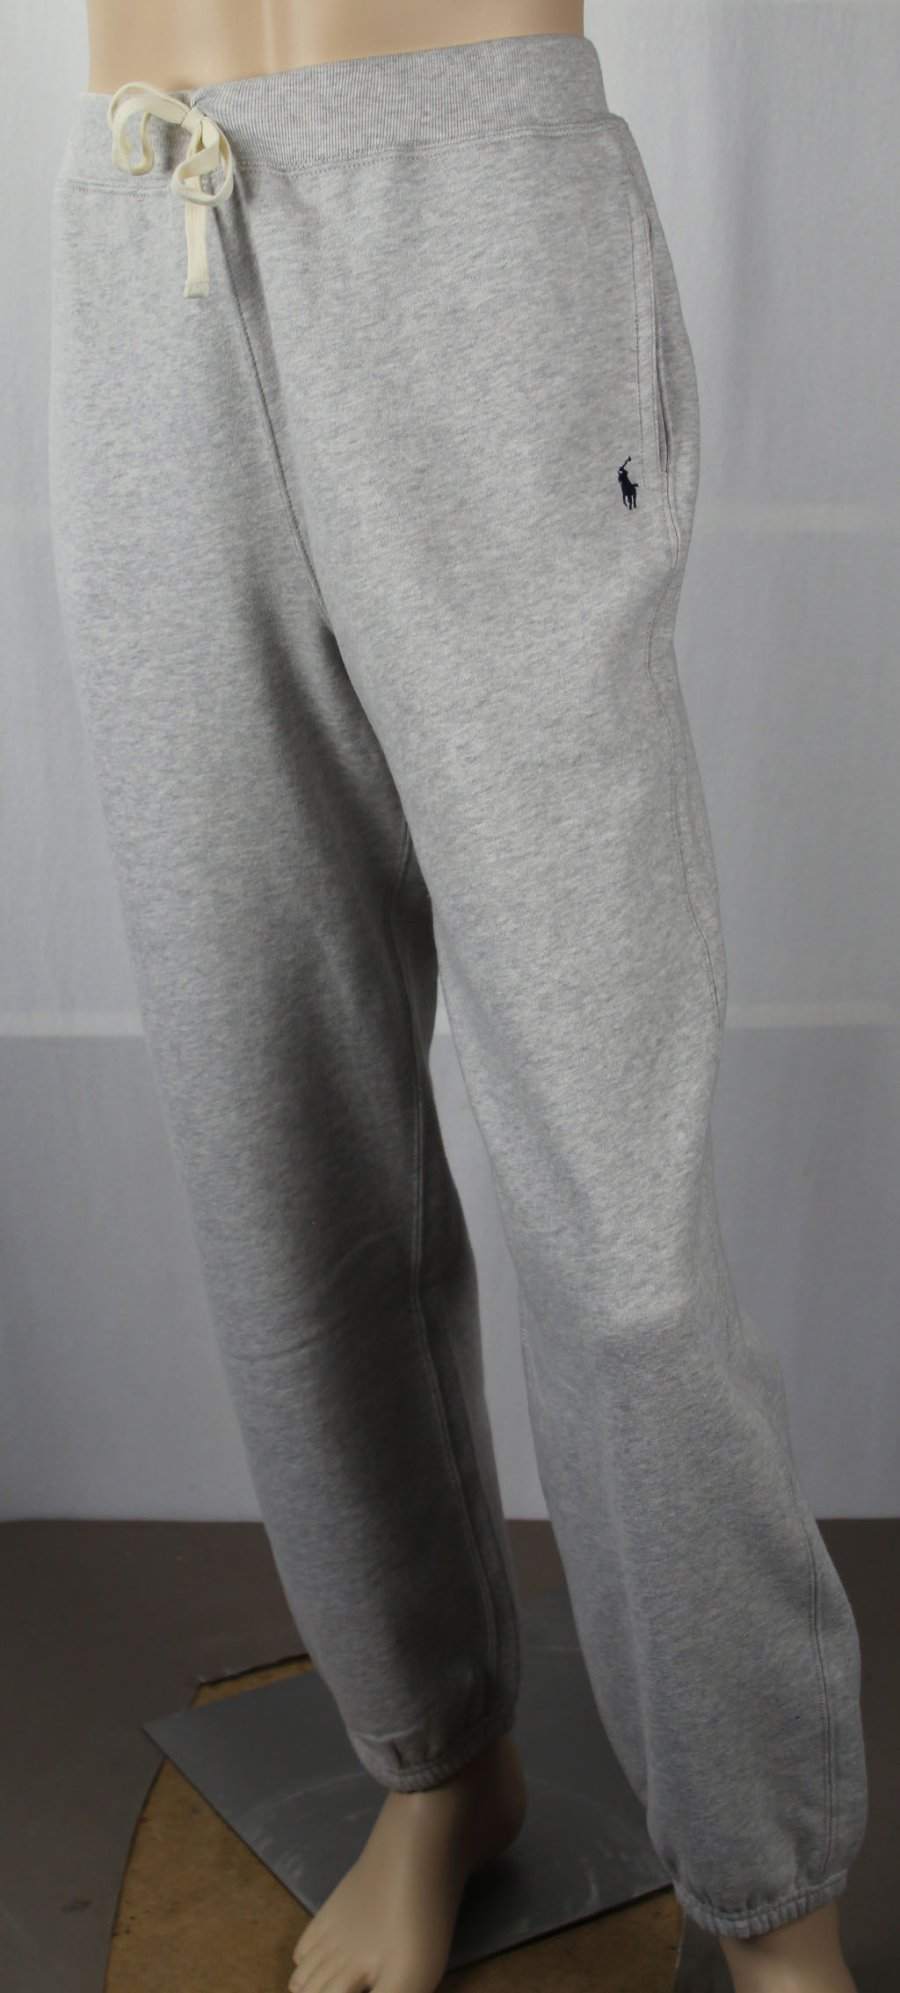 hot-selling fashion san francisco good Details about Polo Ralph Lauren Kids Youth Grey Fleece Sweatpants Navy Blue  Pony NWT